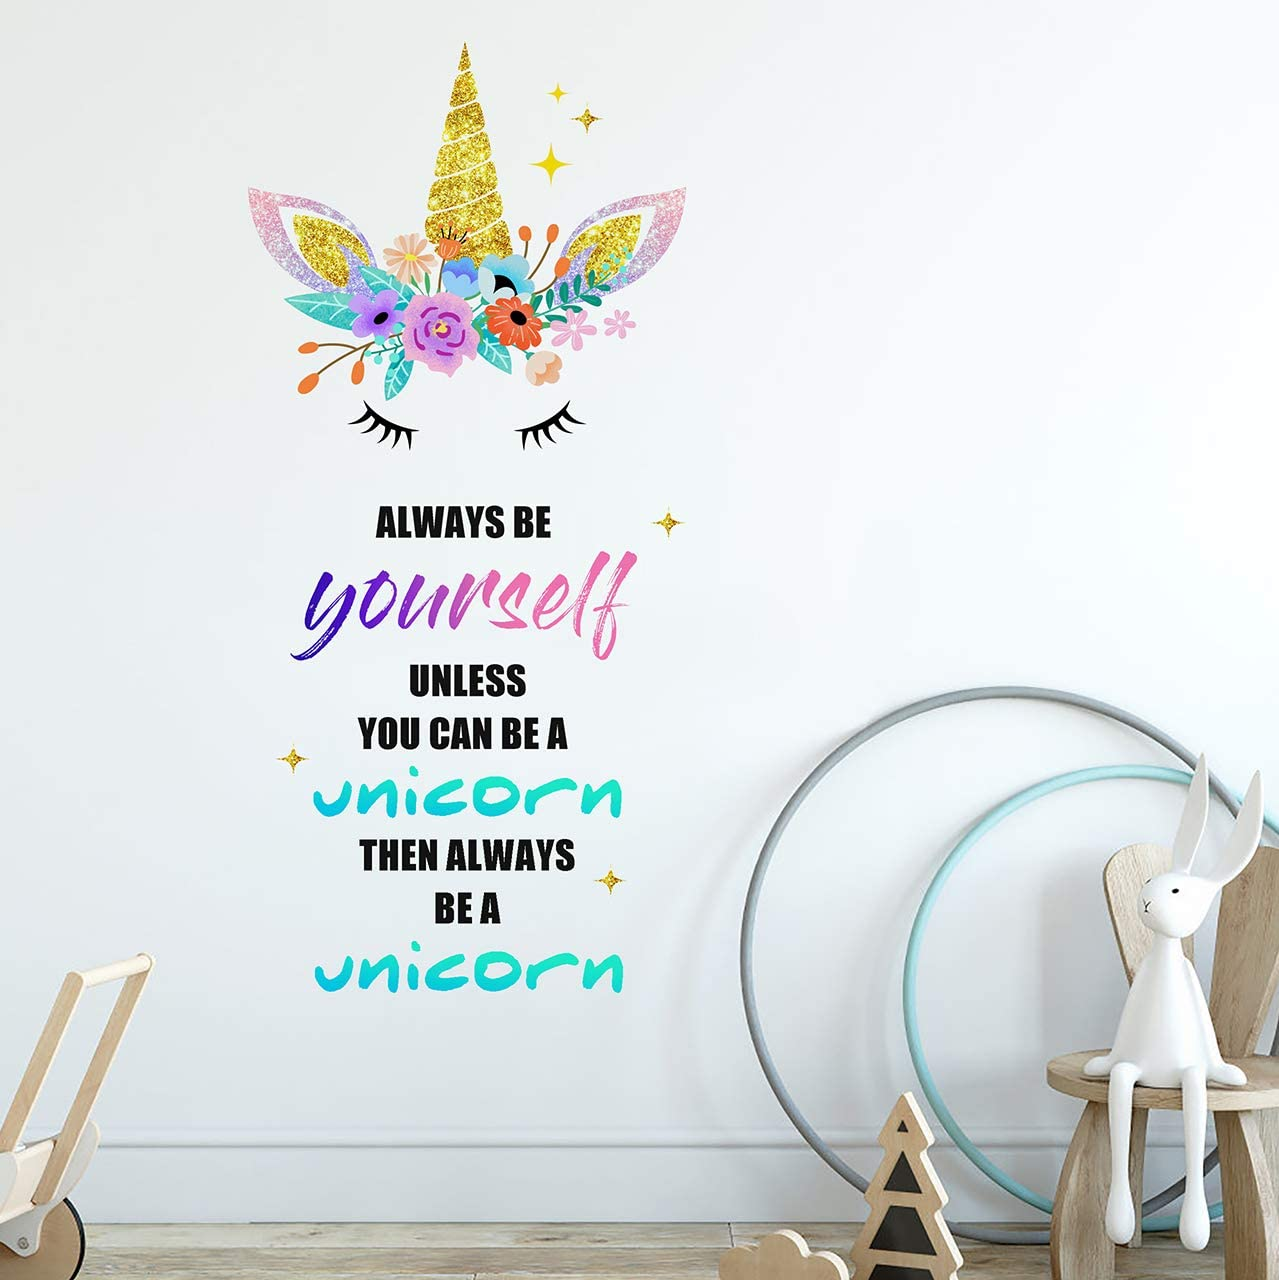 Sionoiur Unicorn Wall Decals Gifts Removable Decor A Very popular! Un Always Be